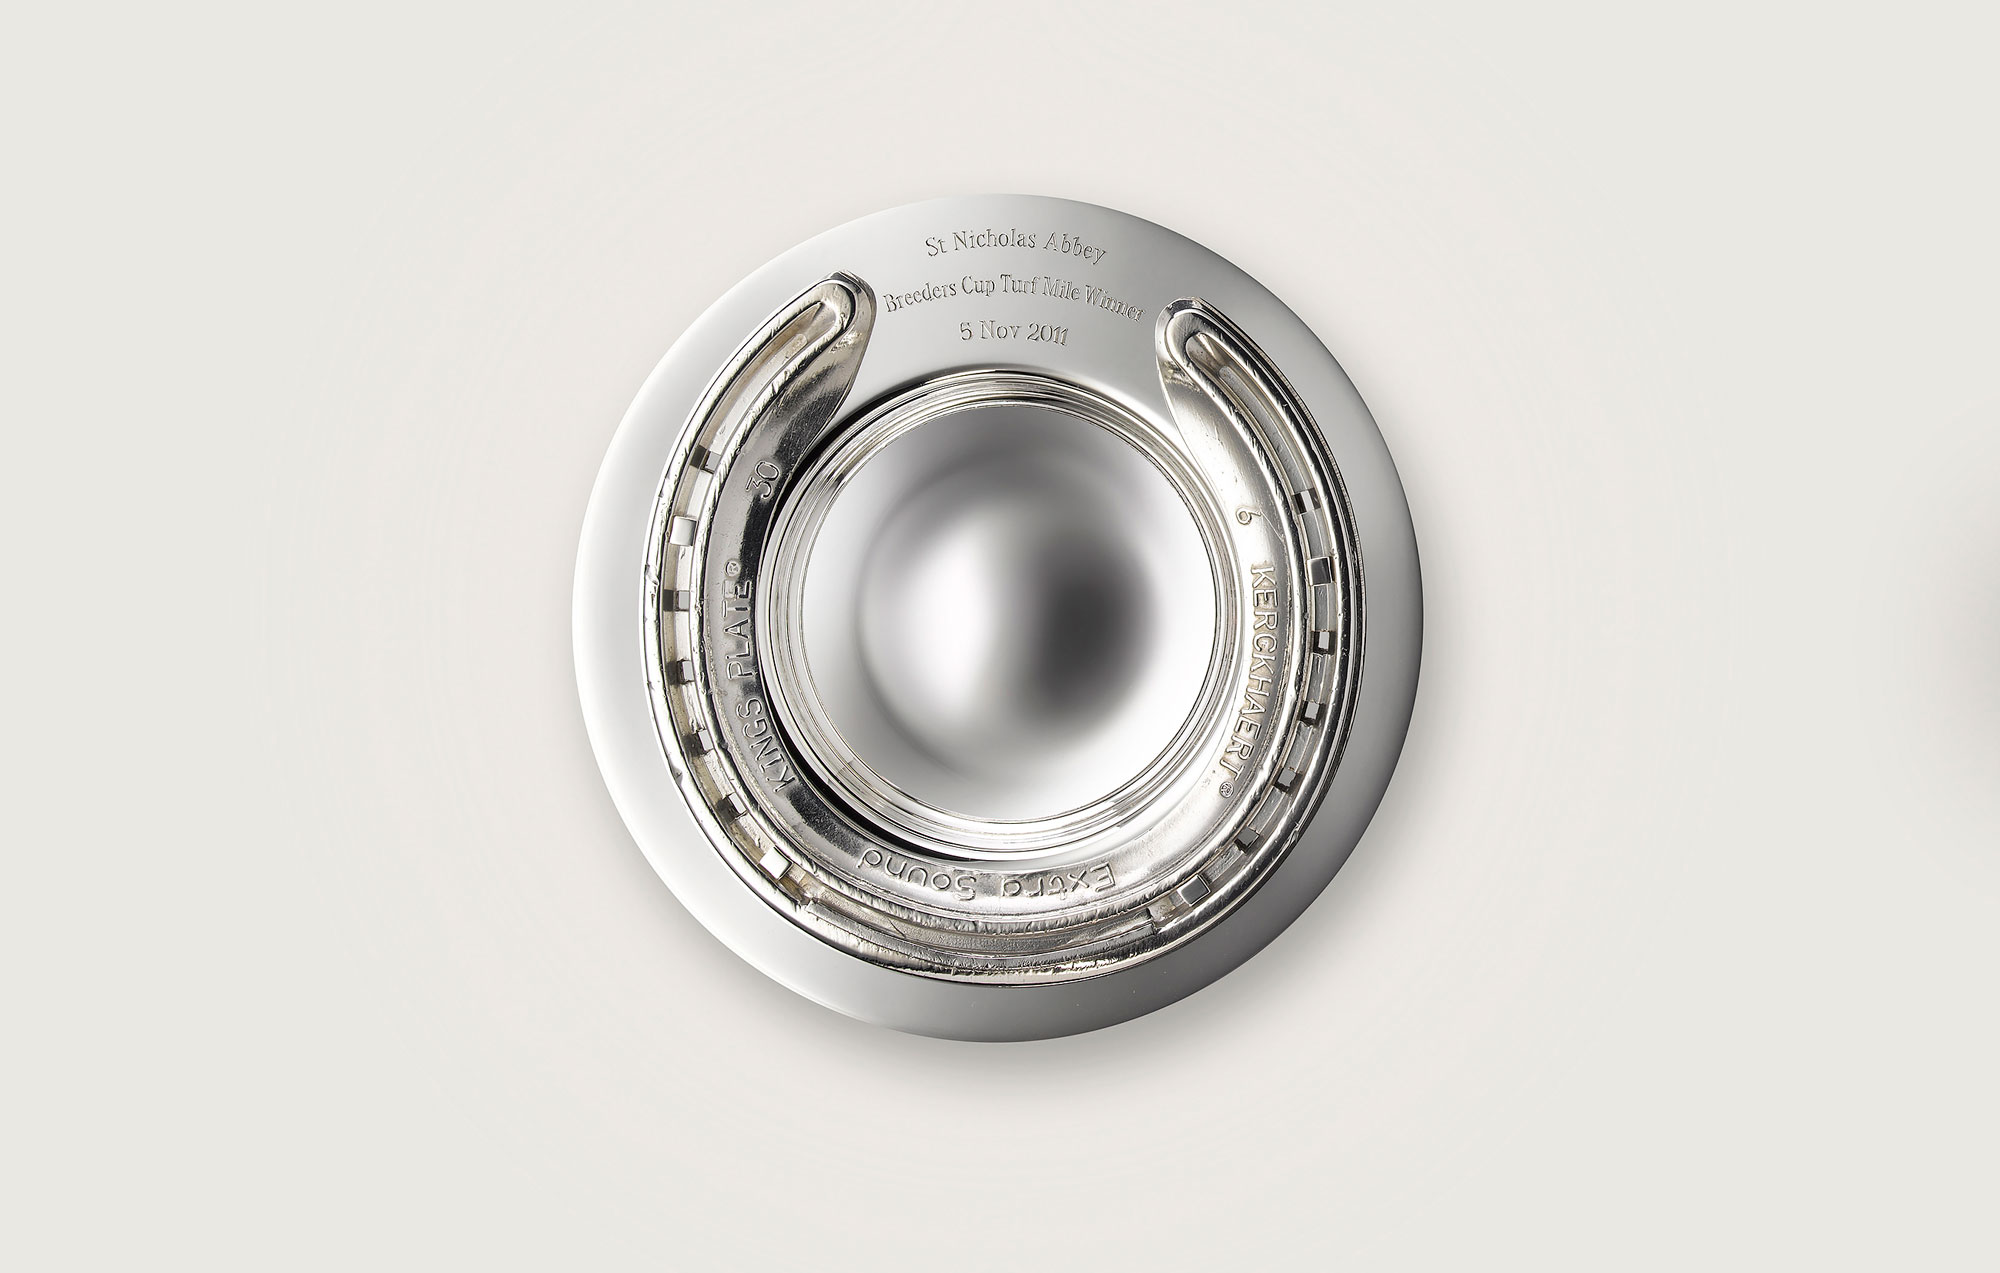 SILVER RACING PLATE